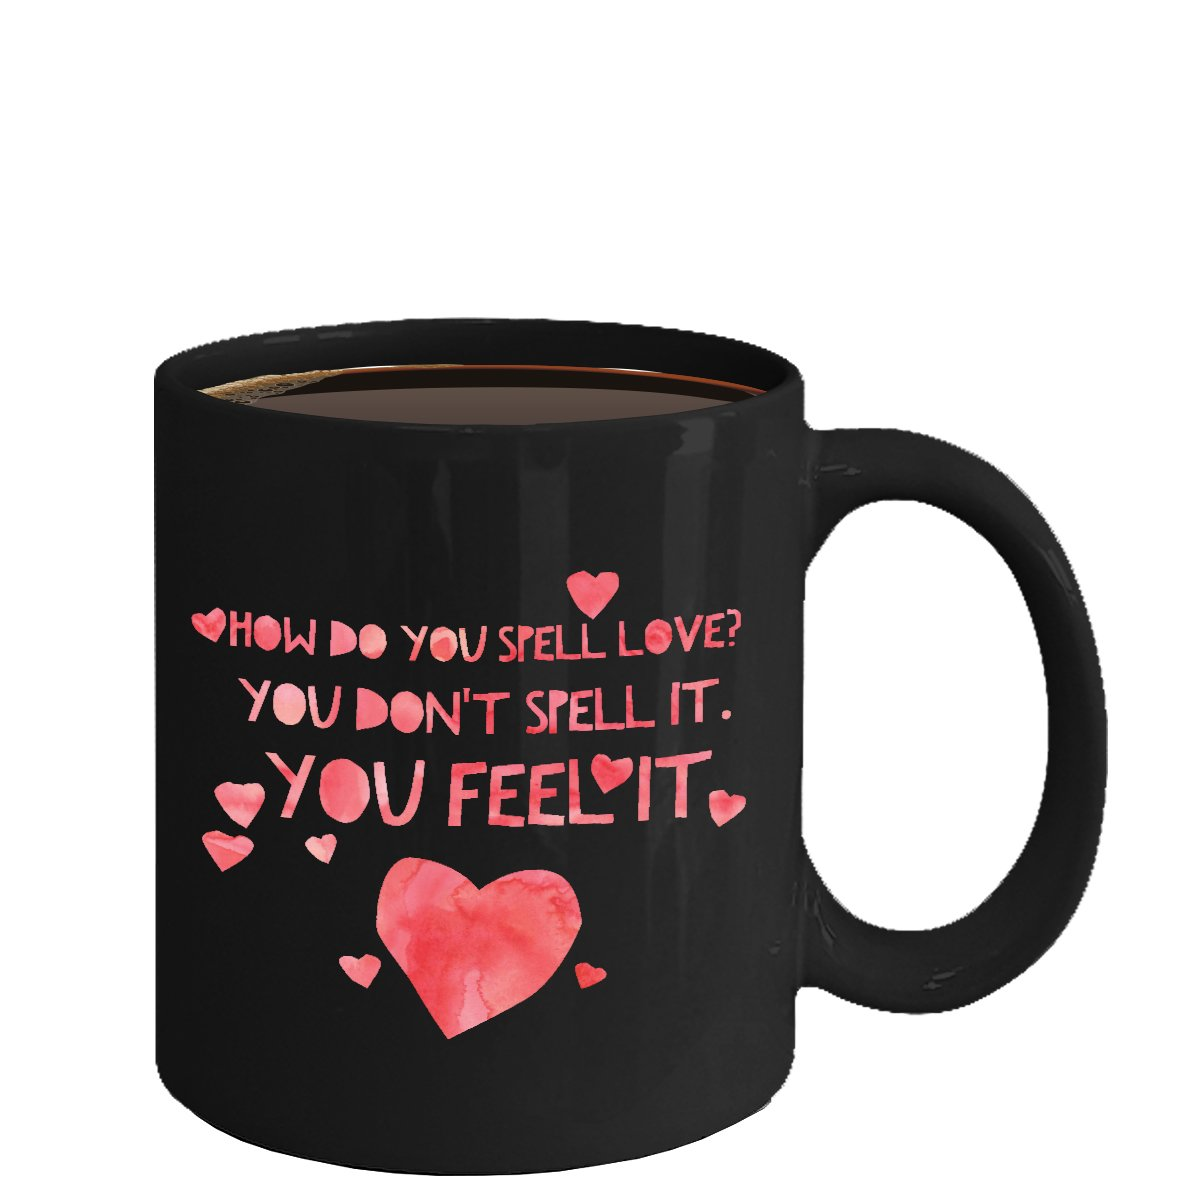 Love Ceramic Coffee Mug - Spell Love - Cute Large Cup (Black) - Best Gift for Men, Women